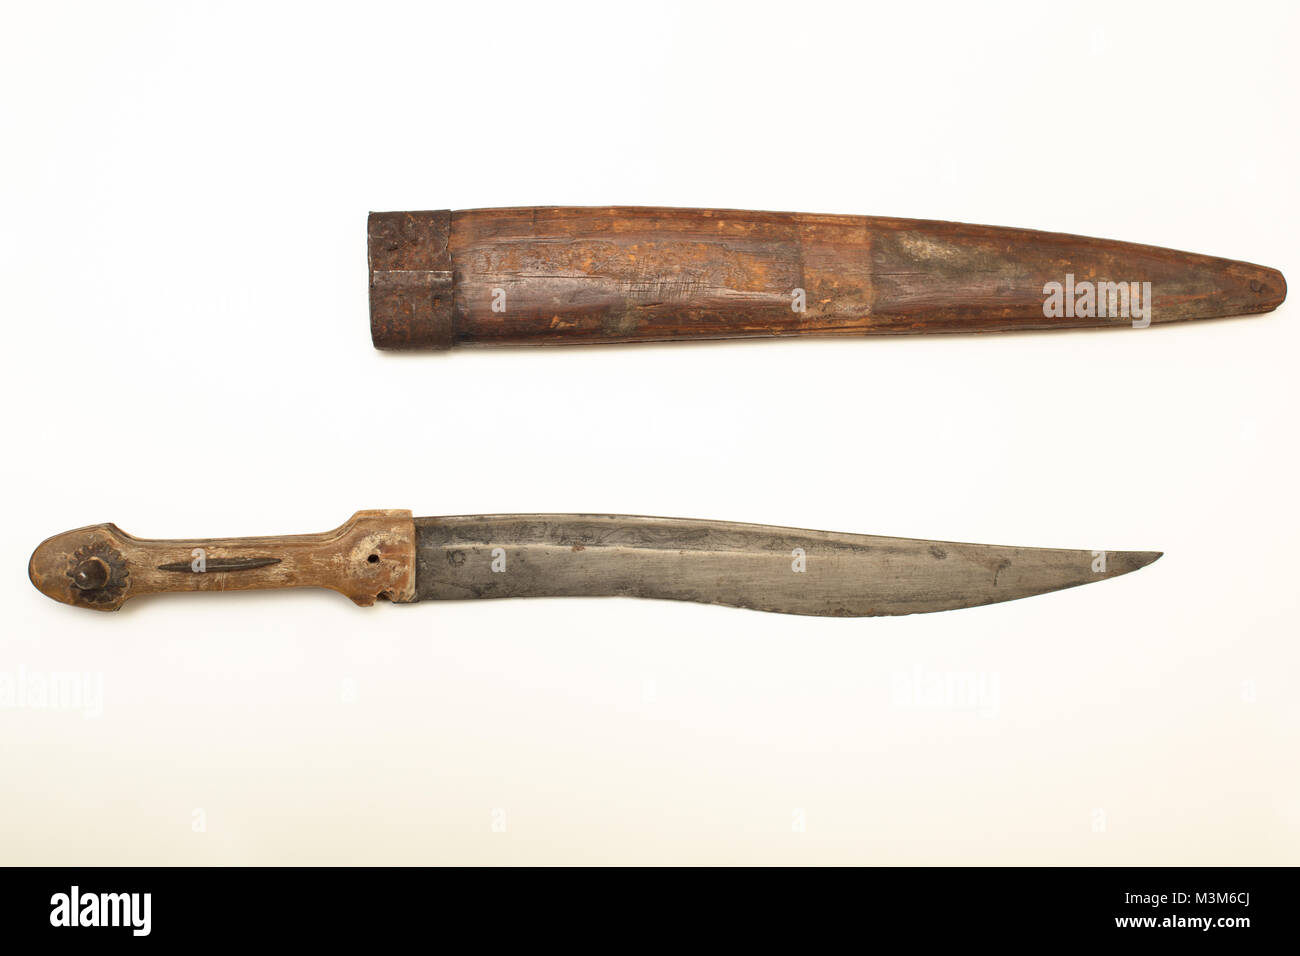 Old dagger with a wooden sheath to carry the weapon isolated on a white background with copy space - Stock Image